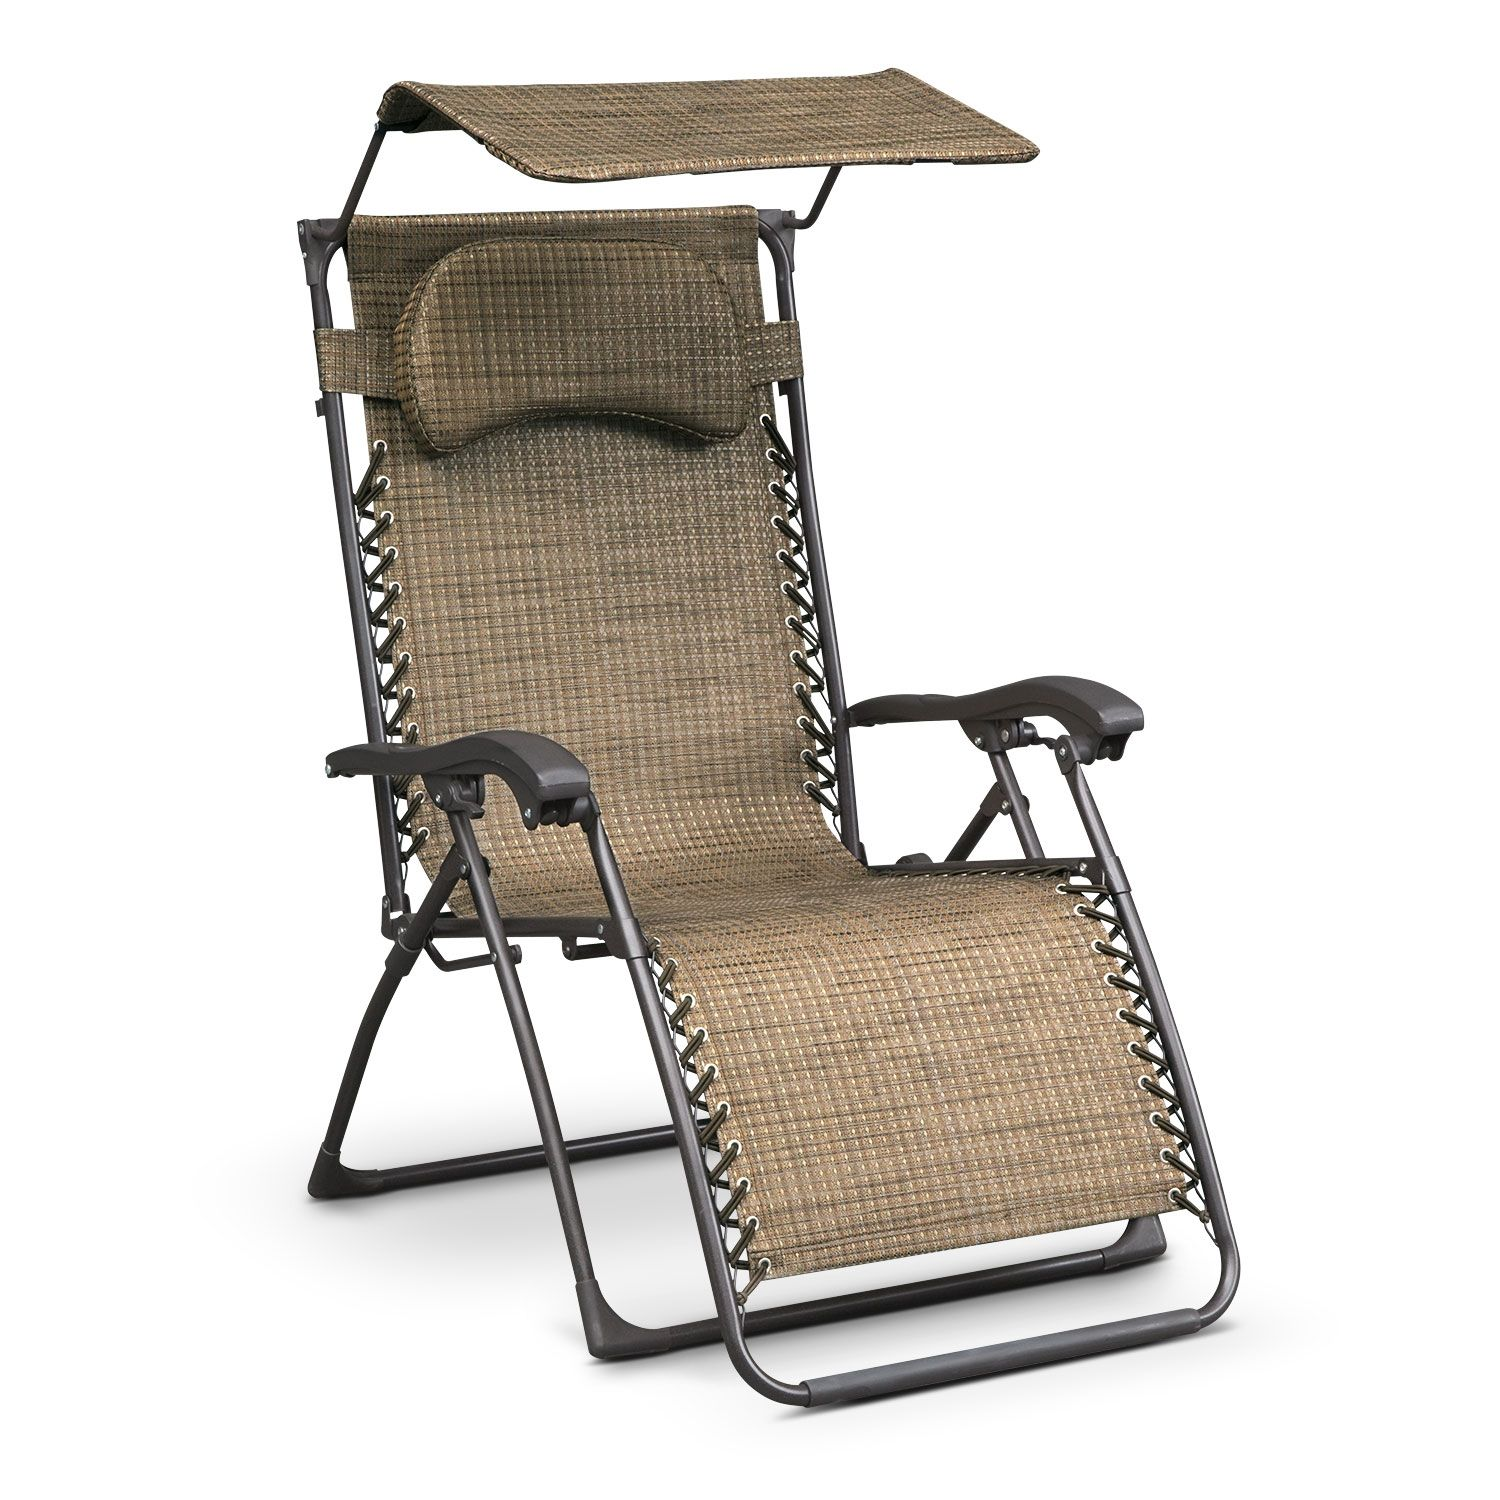 The coolest chair ever patio eclipse zero gravity recliner